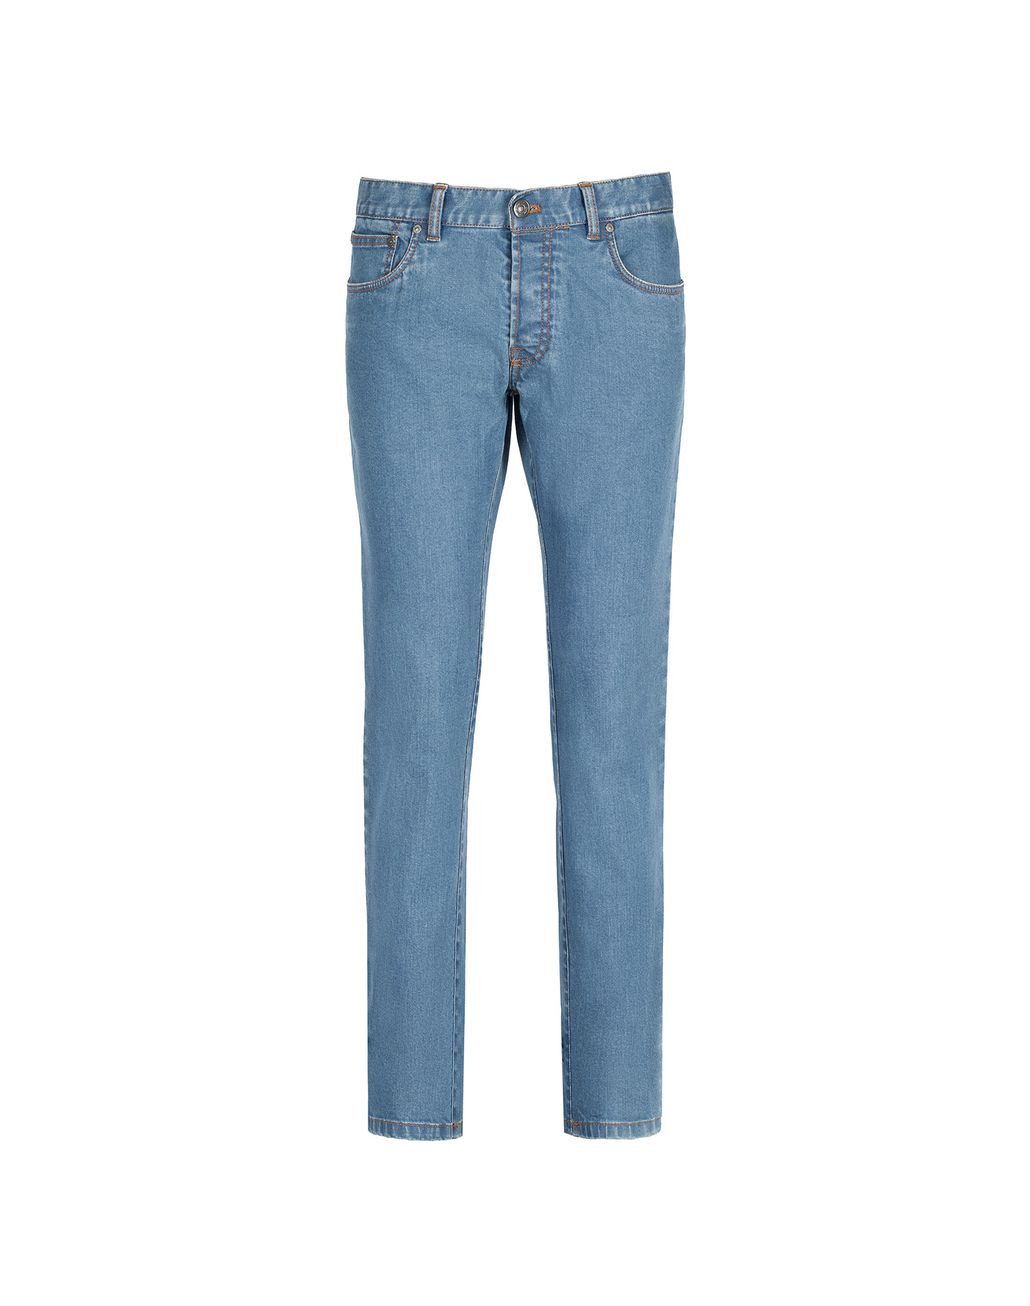 BRIONI Bluette Slim-Fit Aneto Jeans Denim Man f